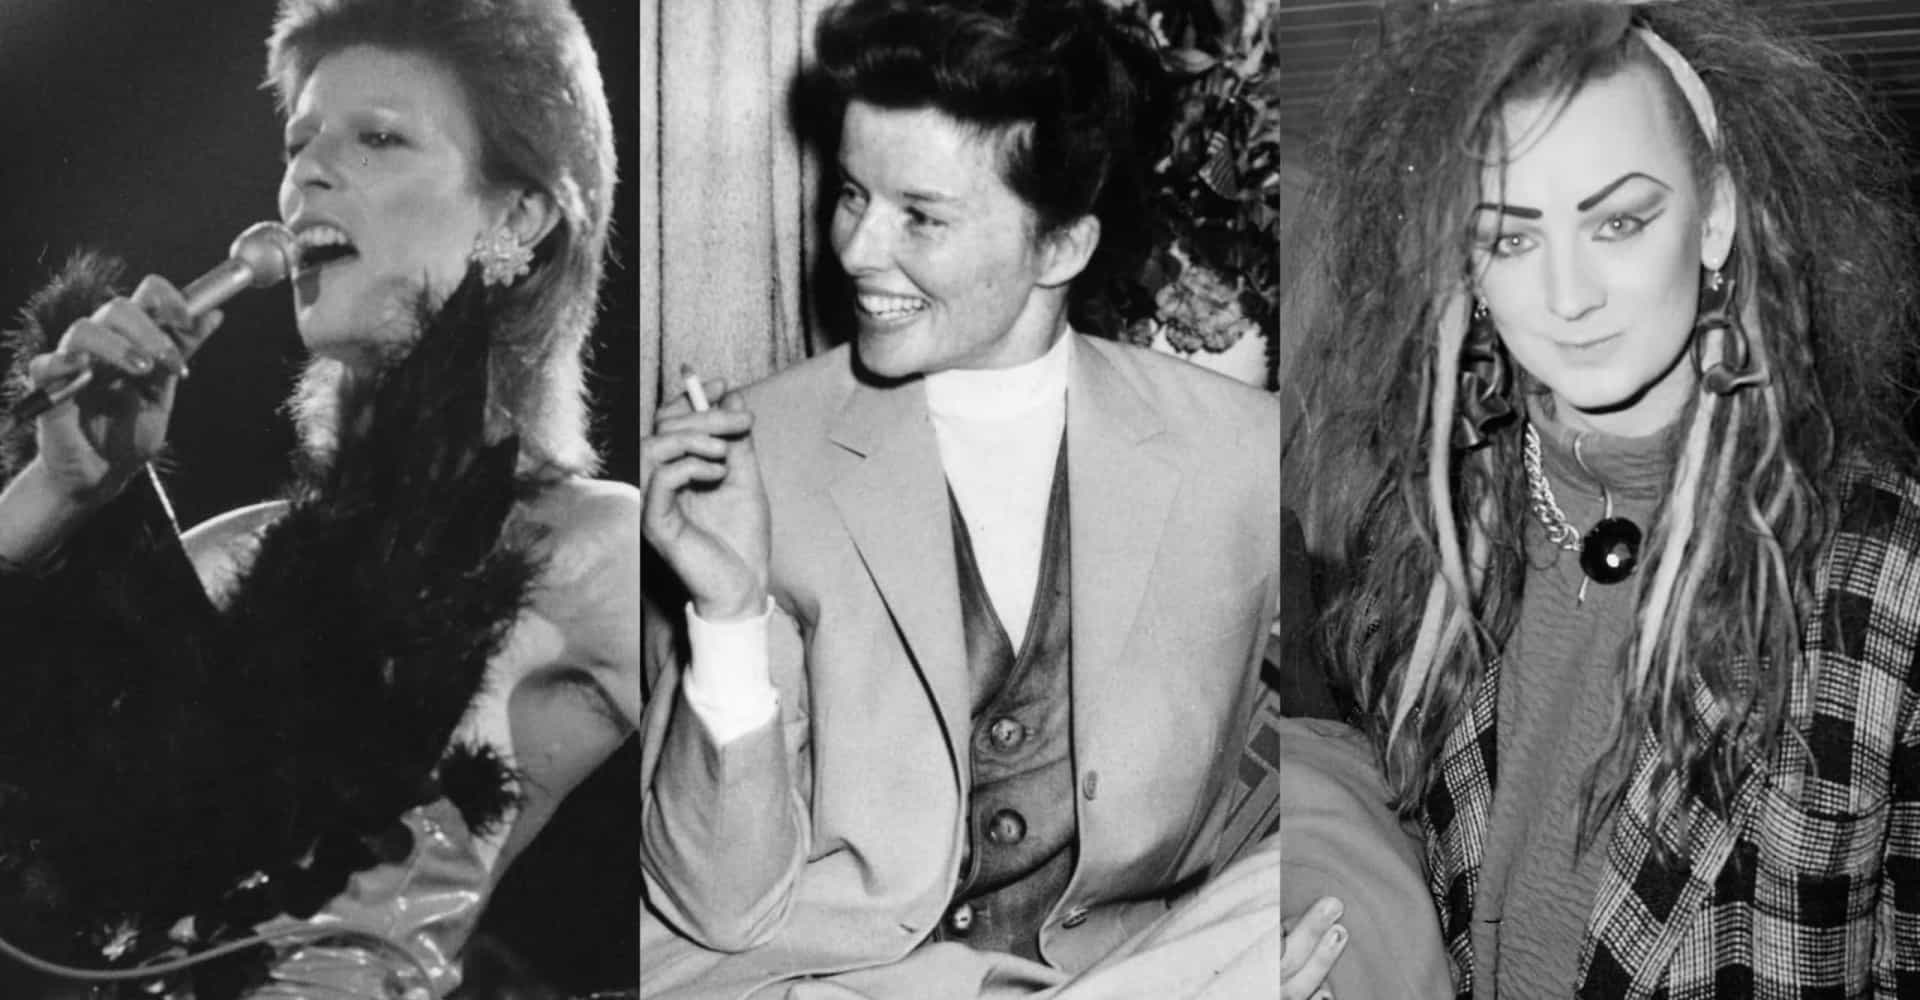 Androgynous style icons: Past and present